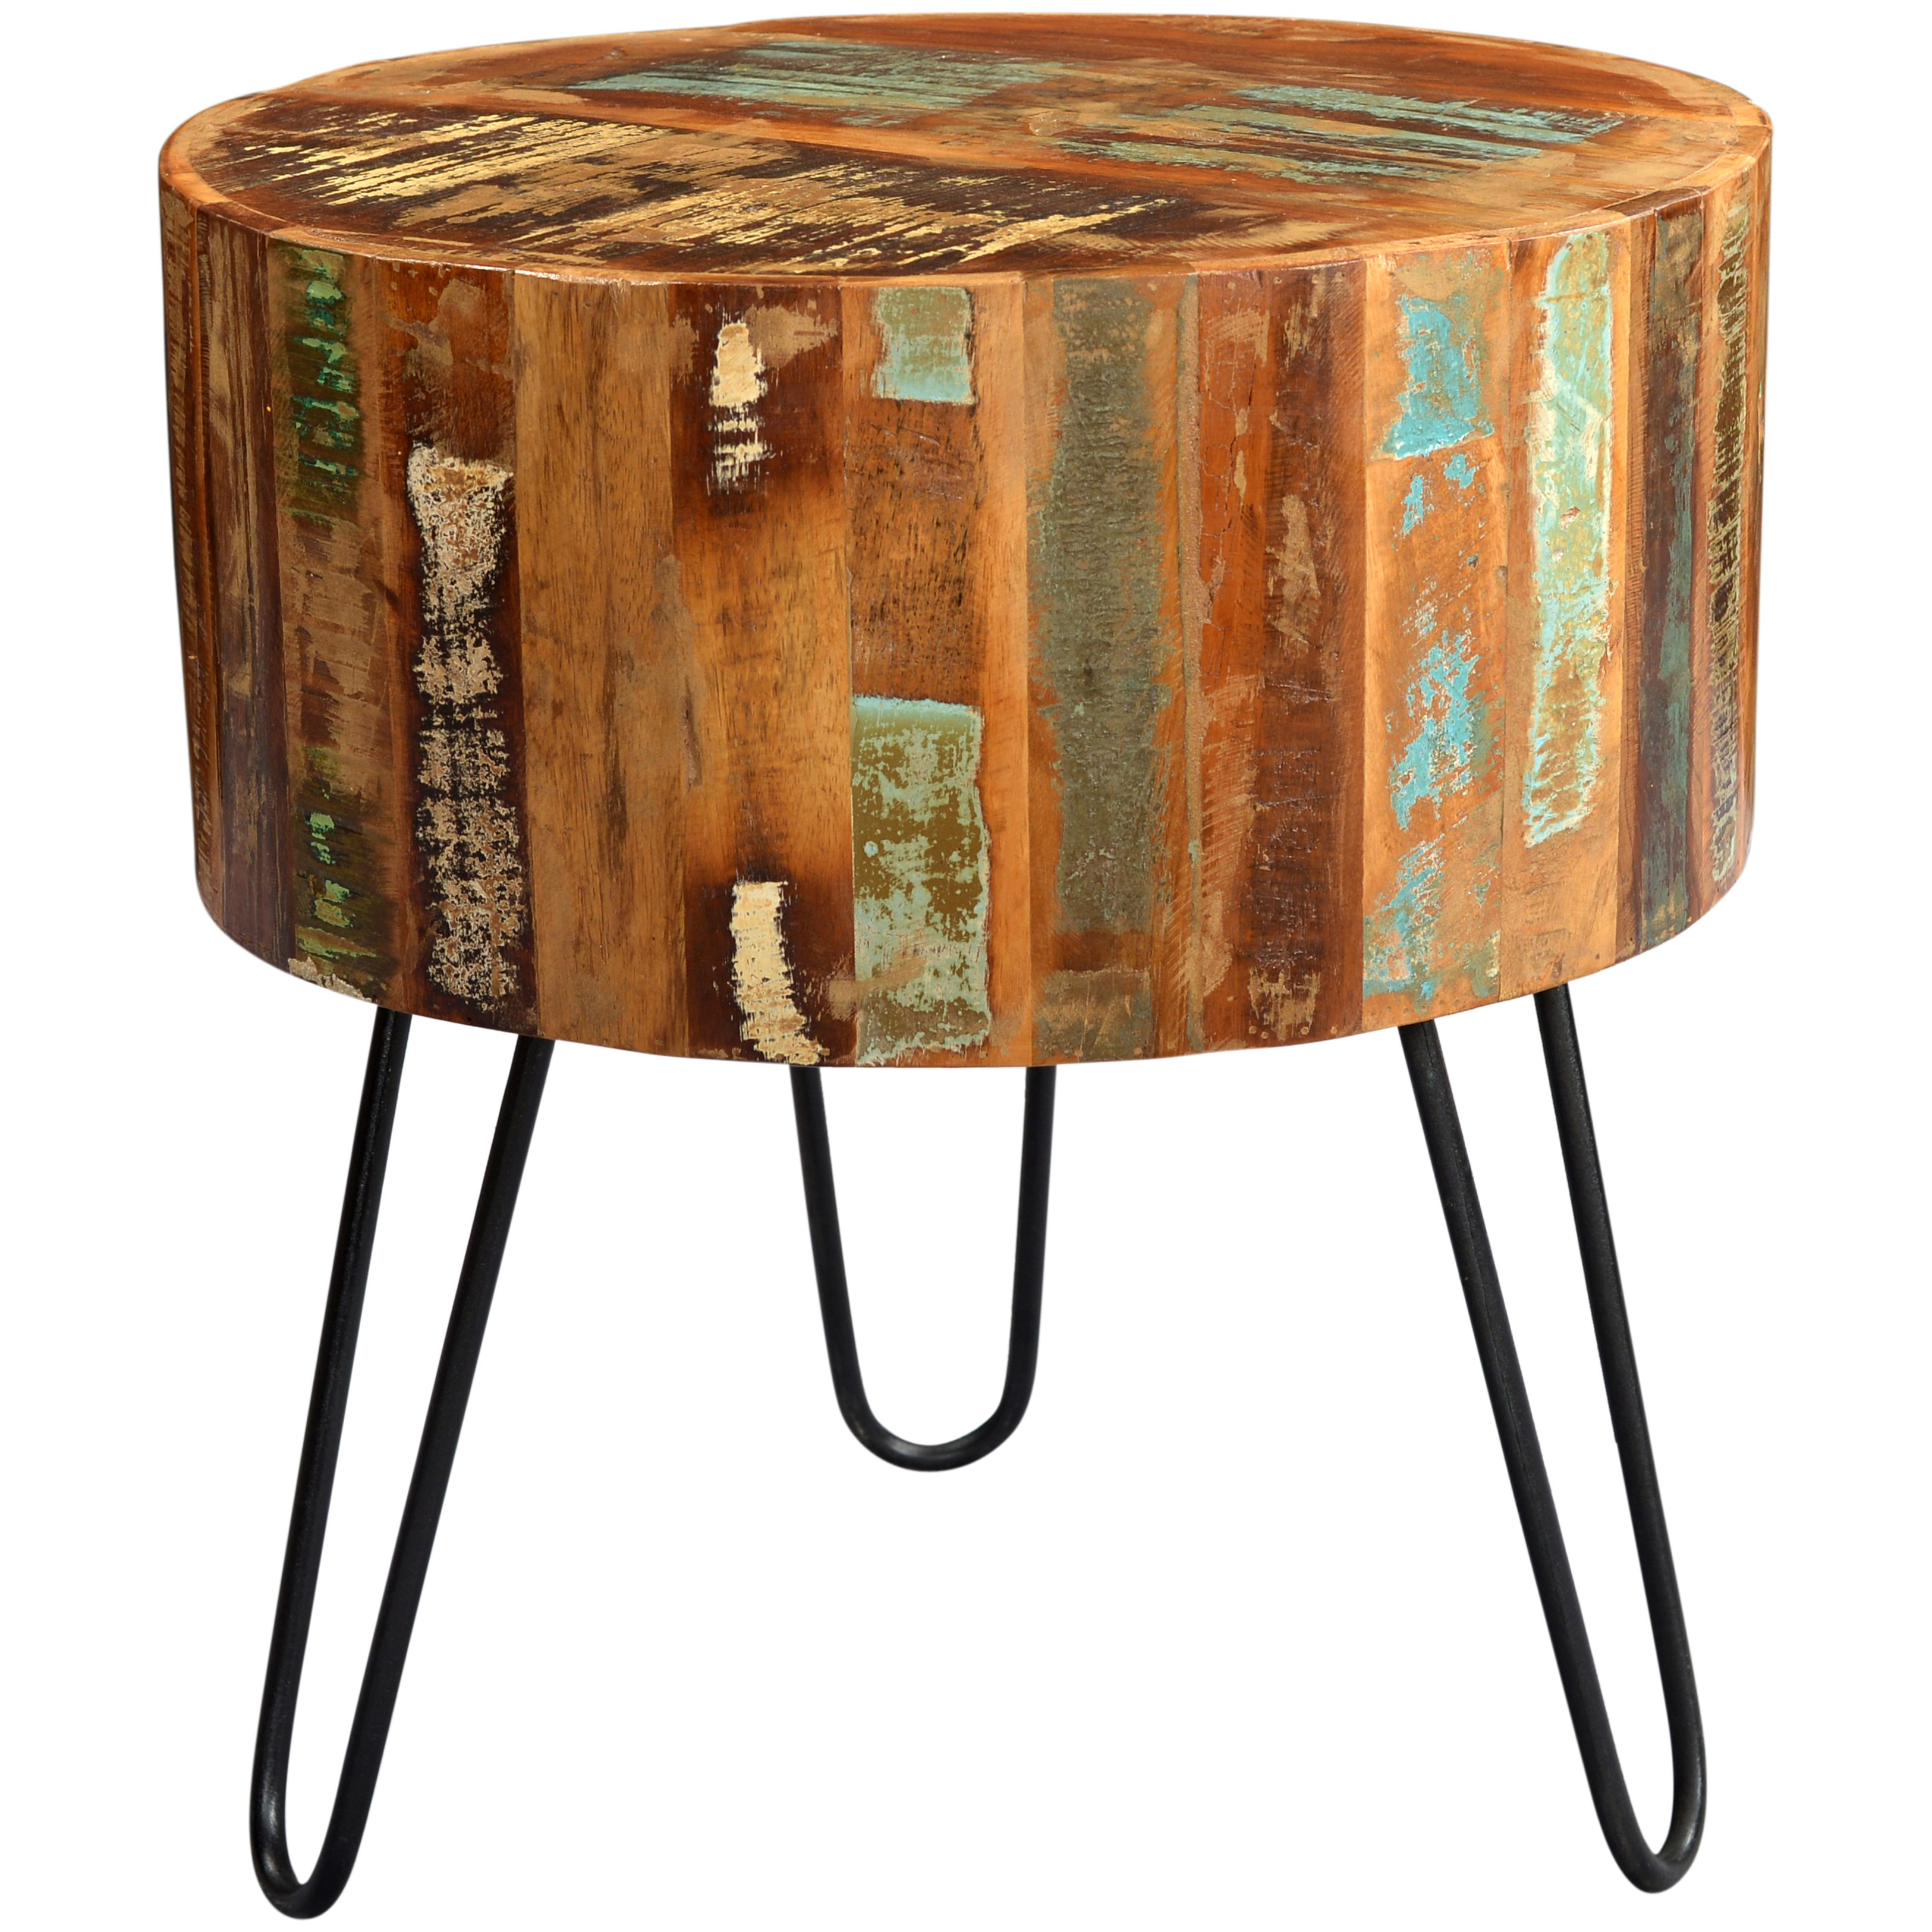 handmade wanderloot tulsa round reclaimed wood end table with hairpin legs room essentials accent walnut free shipping today marble black small red rosette tablecloth west elm